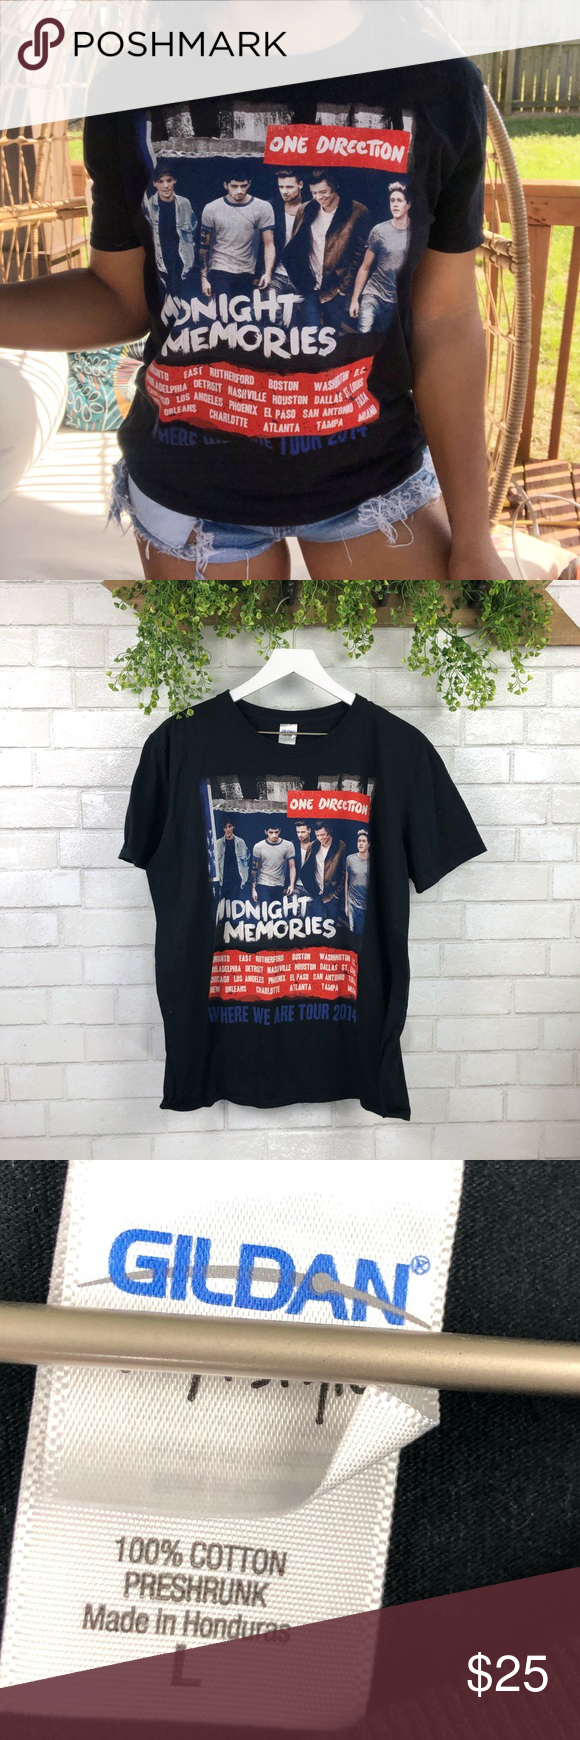 One Direction Midnight Memories Concert Band Tee One Direction 2014 Midnight Memories Concert Band Tee SZ L Pit to pit measurements are approximately 22 inches  Length measurements are approximately 27 inches  Pet free and smoke free home  Staple for any closet  *Bin P All reasonable offers considered Tops Tees - Short Sleeve #onedirection2014